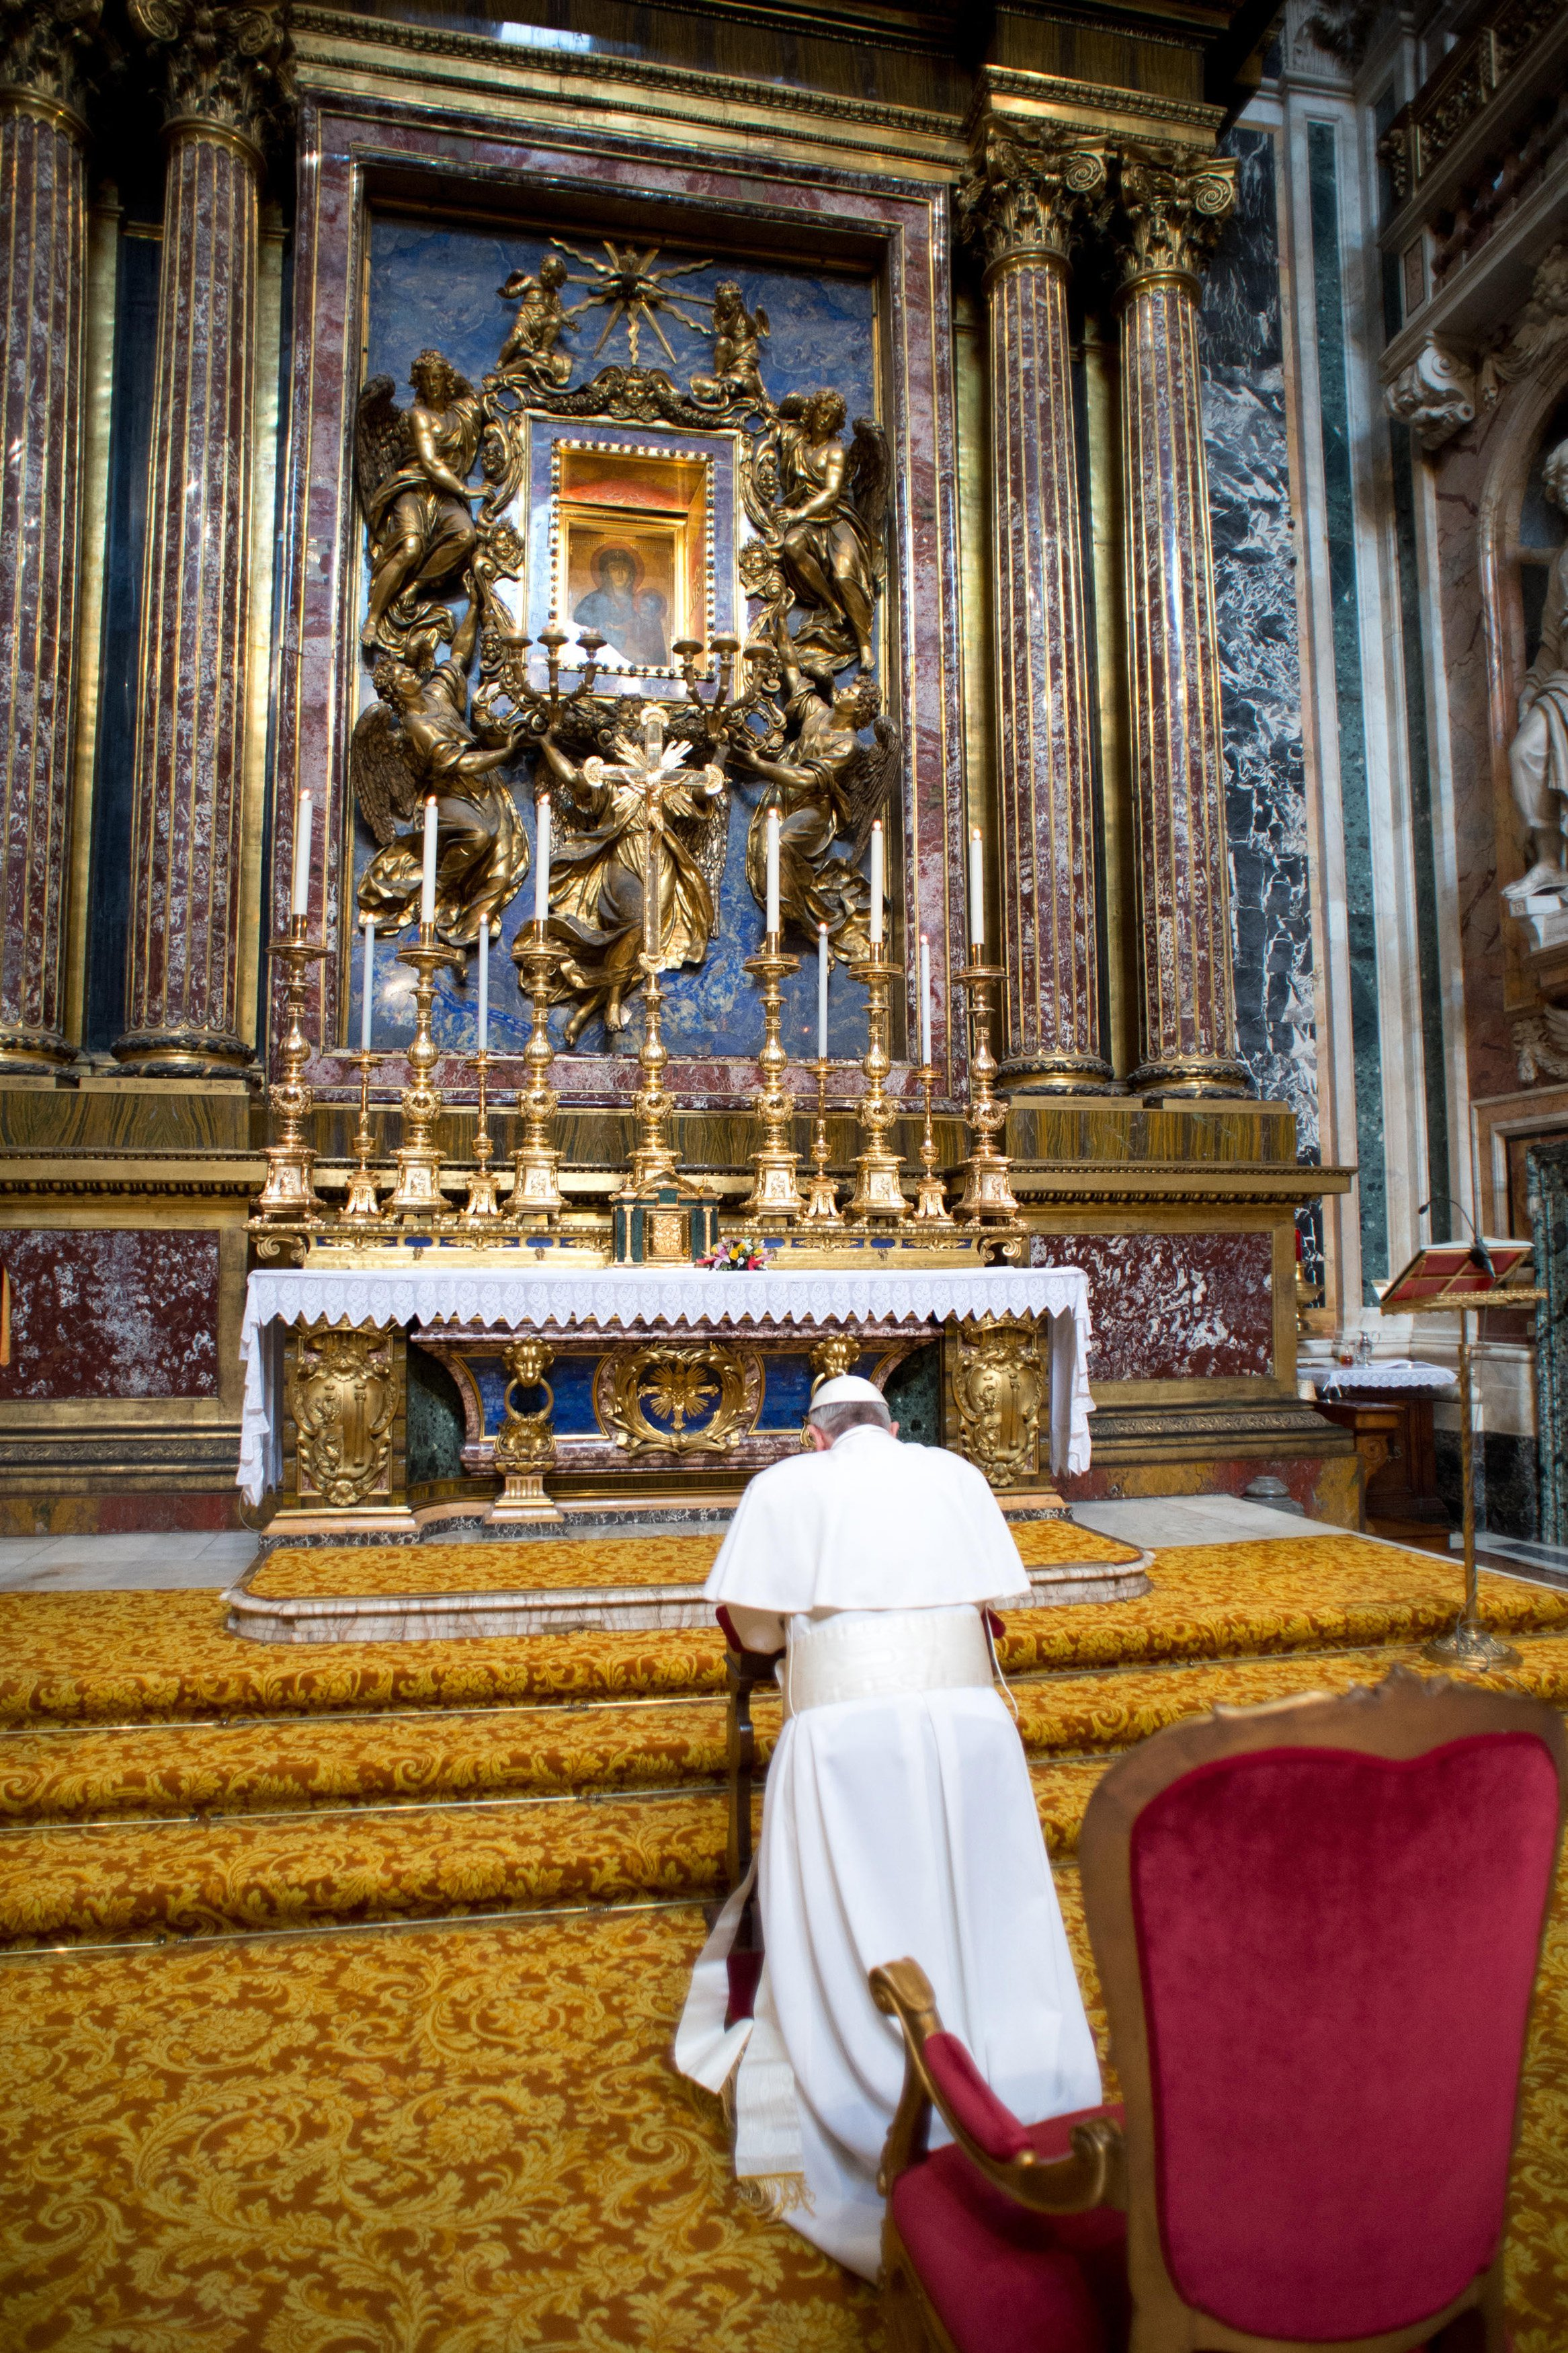 Papst Franziskus Kardinal Jorge Mario Bergoglio wurde am 13.3.2013 vom Konklave zum Papst gewählt. Bild: Papst Franziskus besuchte am 14. März 2013 die Basilika Santa Maria Maggiore in Rom. REUTERS/Osservatore Romano (ITALY - Tags: RELIGION) FOR EDITORIAL USE ONLY. NOT FOR SALE FOR MARKETING OR ADVERTISING CAMPAIGNS. THIS IMAGE HAS BEEN SUPPLIED BY A THIRD PARTY. IT IS DISTRIBUTED, EXACTLY AS RECEIVED BY REUTERS, AS A SERVICE TO CLIENTS. - RTR3EZ1X